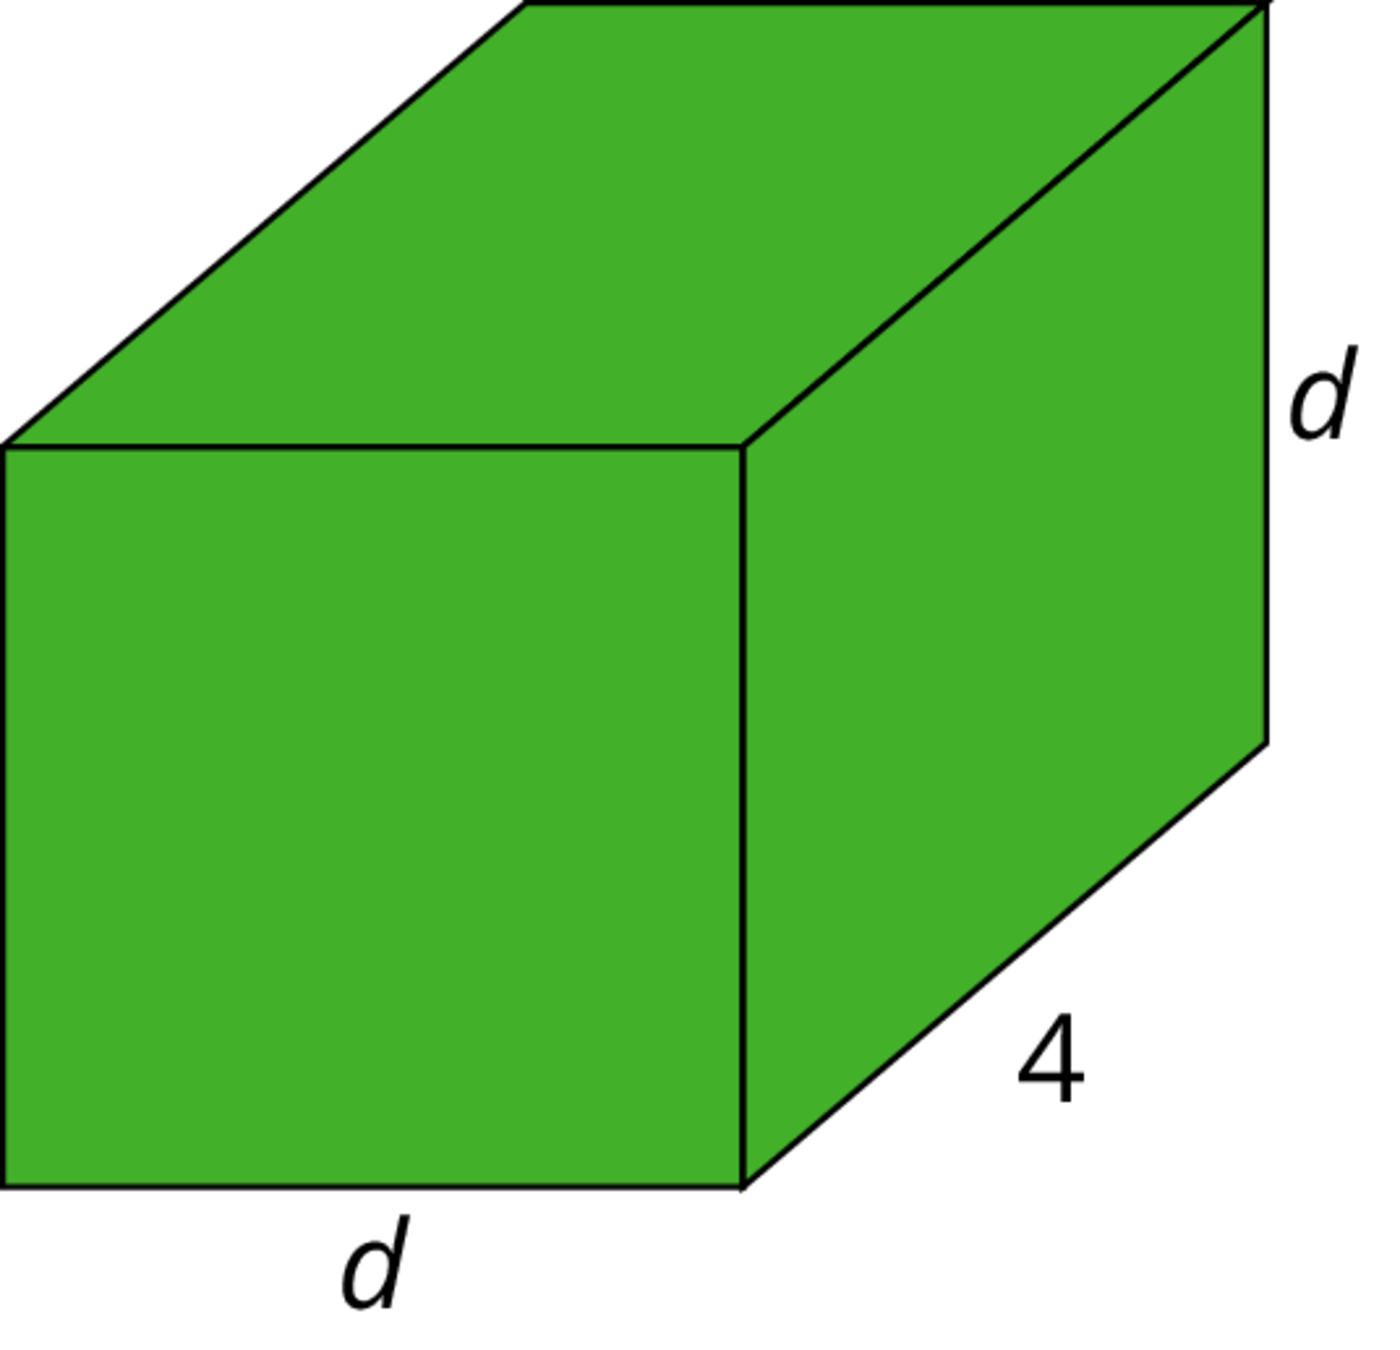 A rectangular prism with a square base. The width of the base is labeled d and the rectangular face has length 4 and height d.